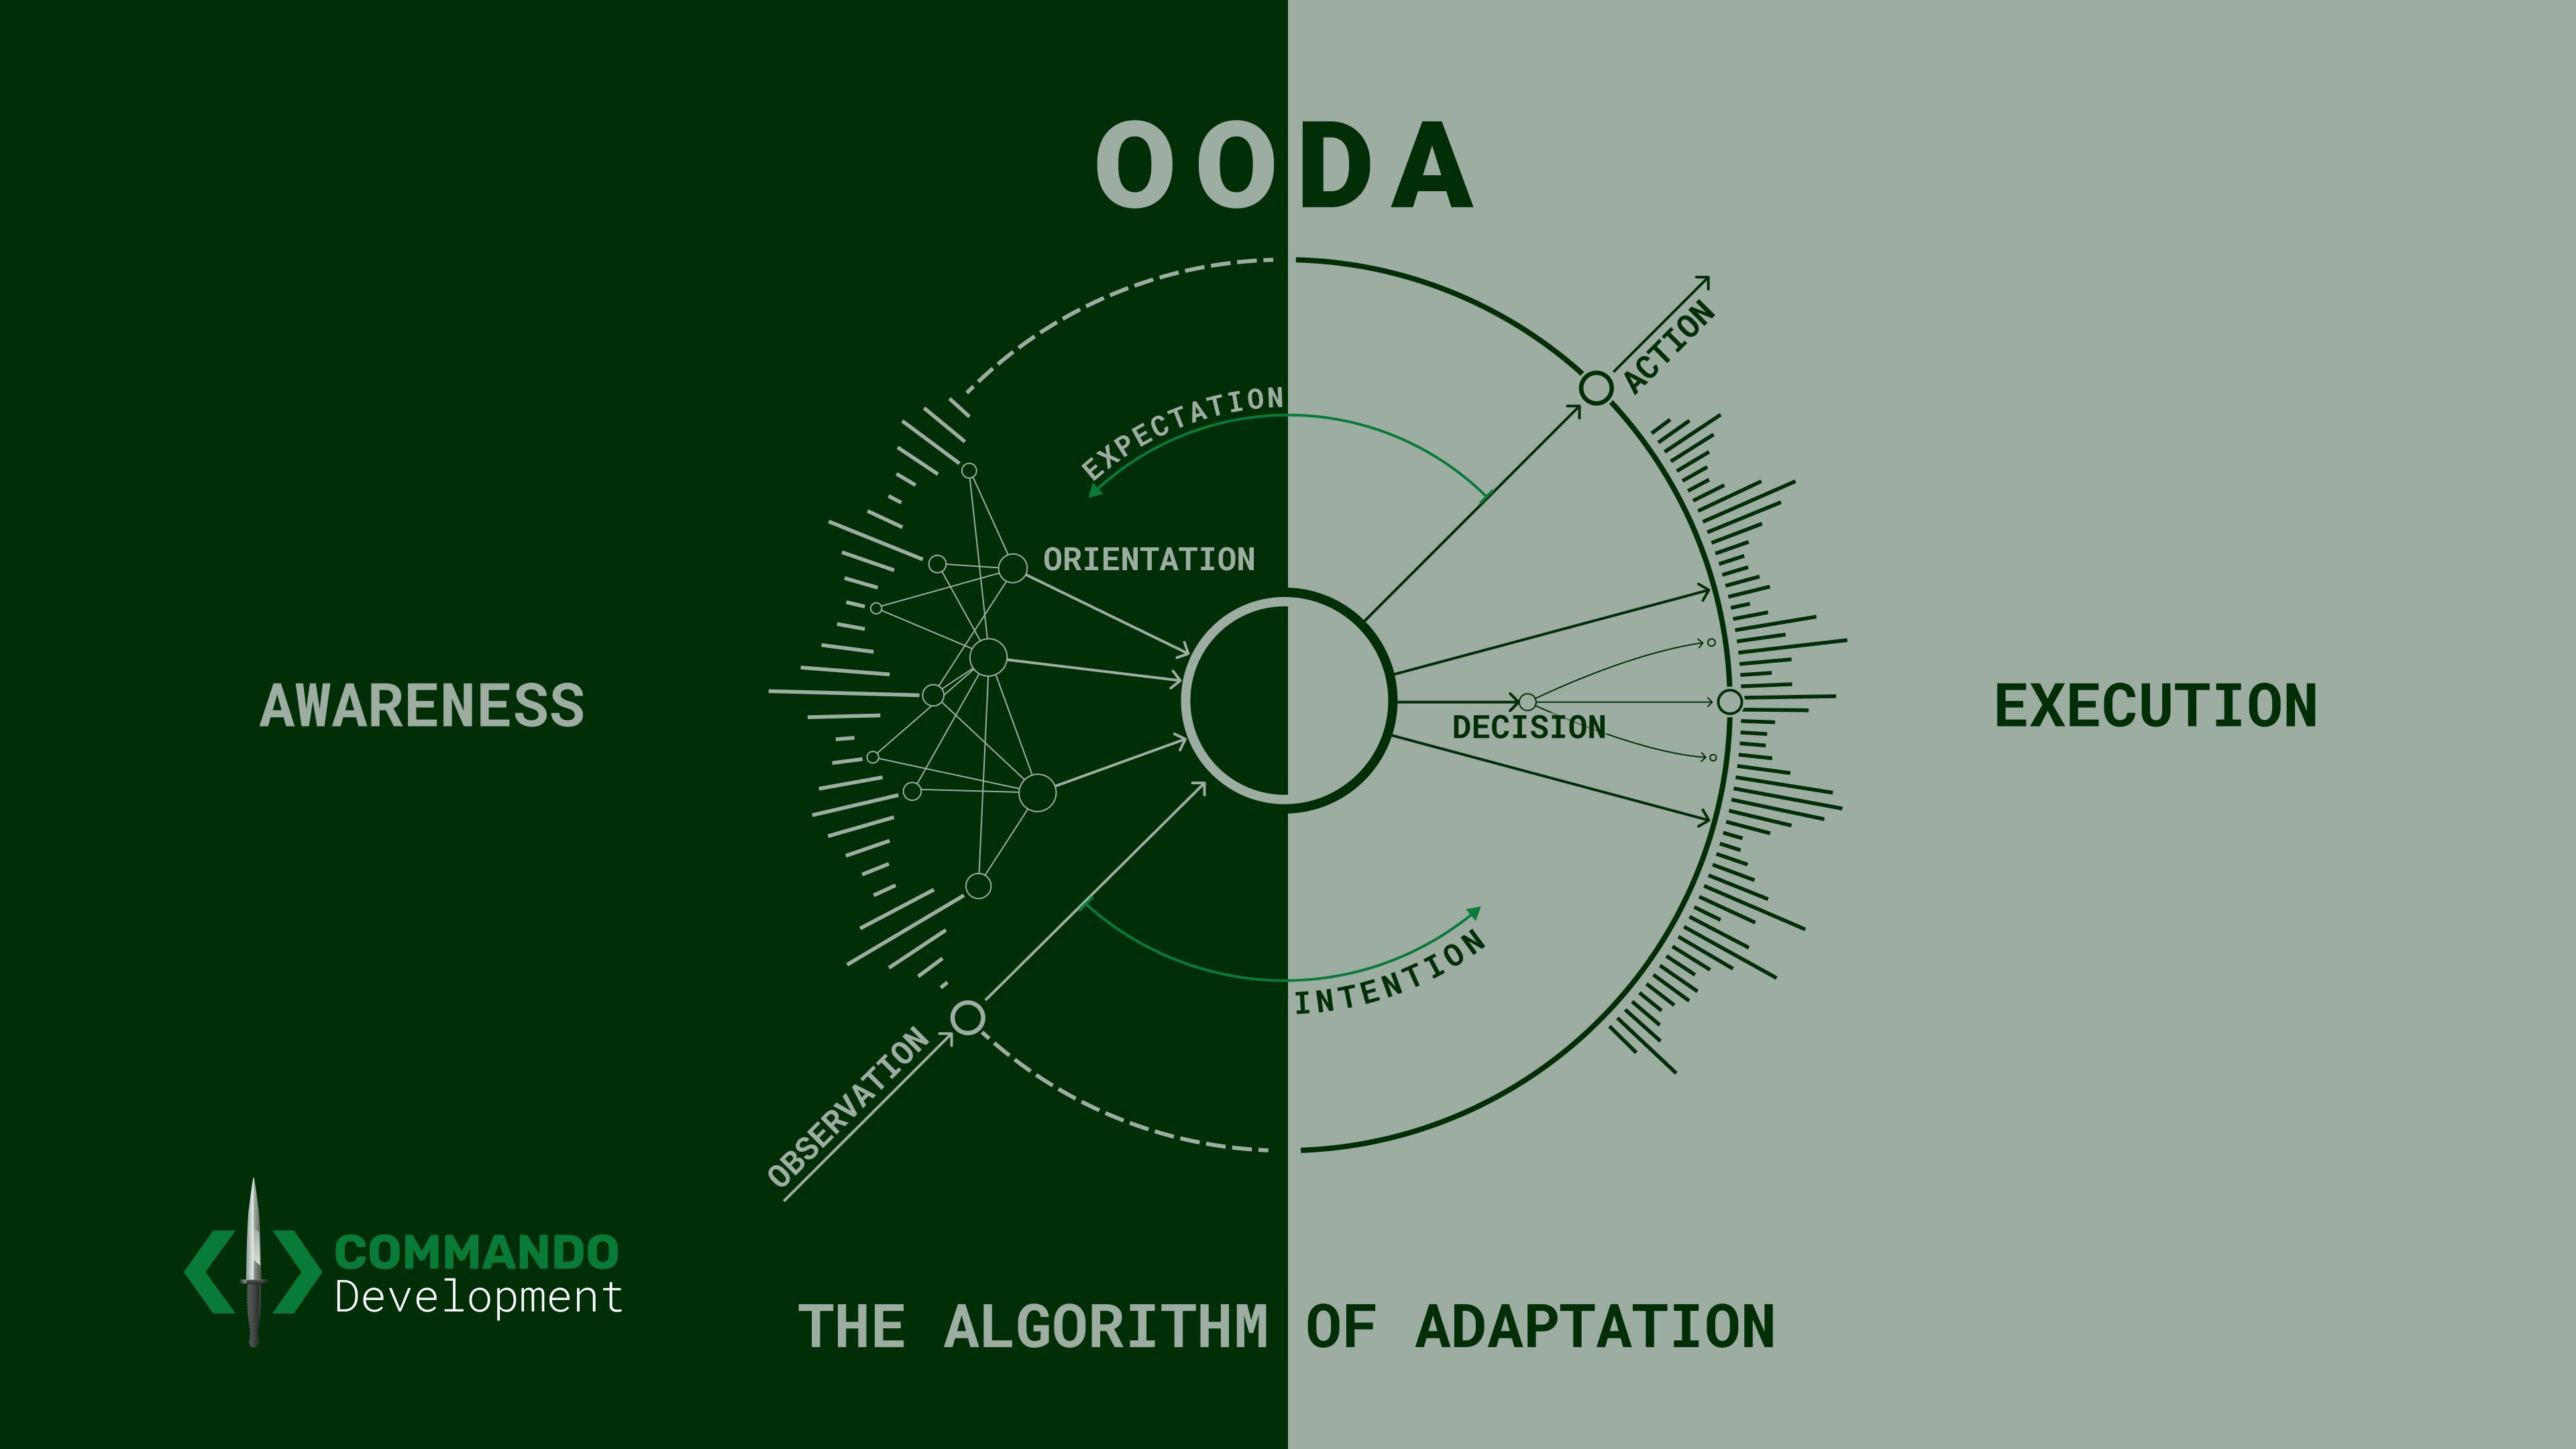 The OODA diagram that is easiest to remember